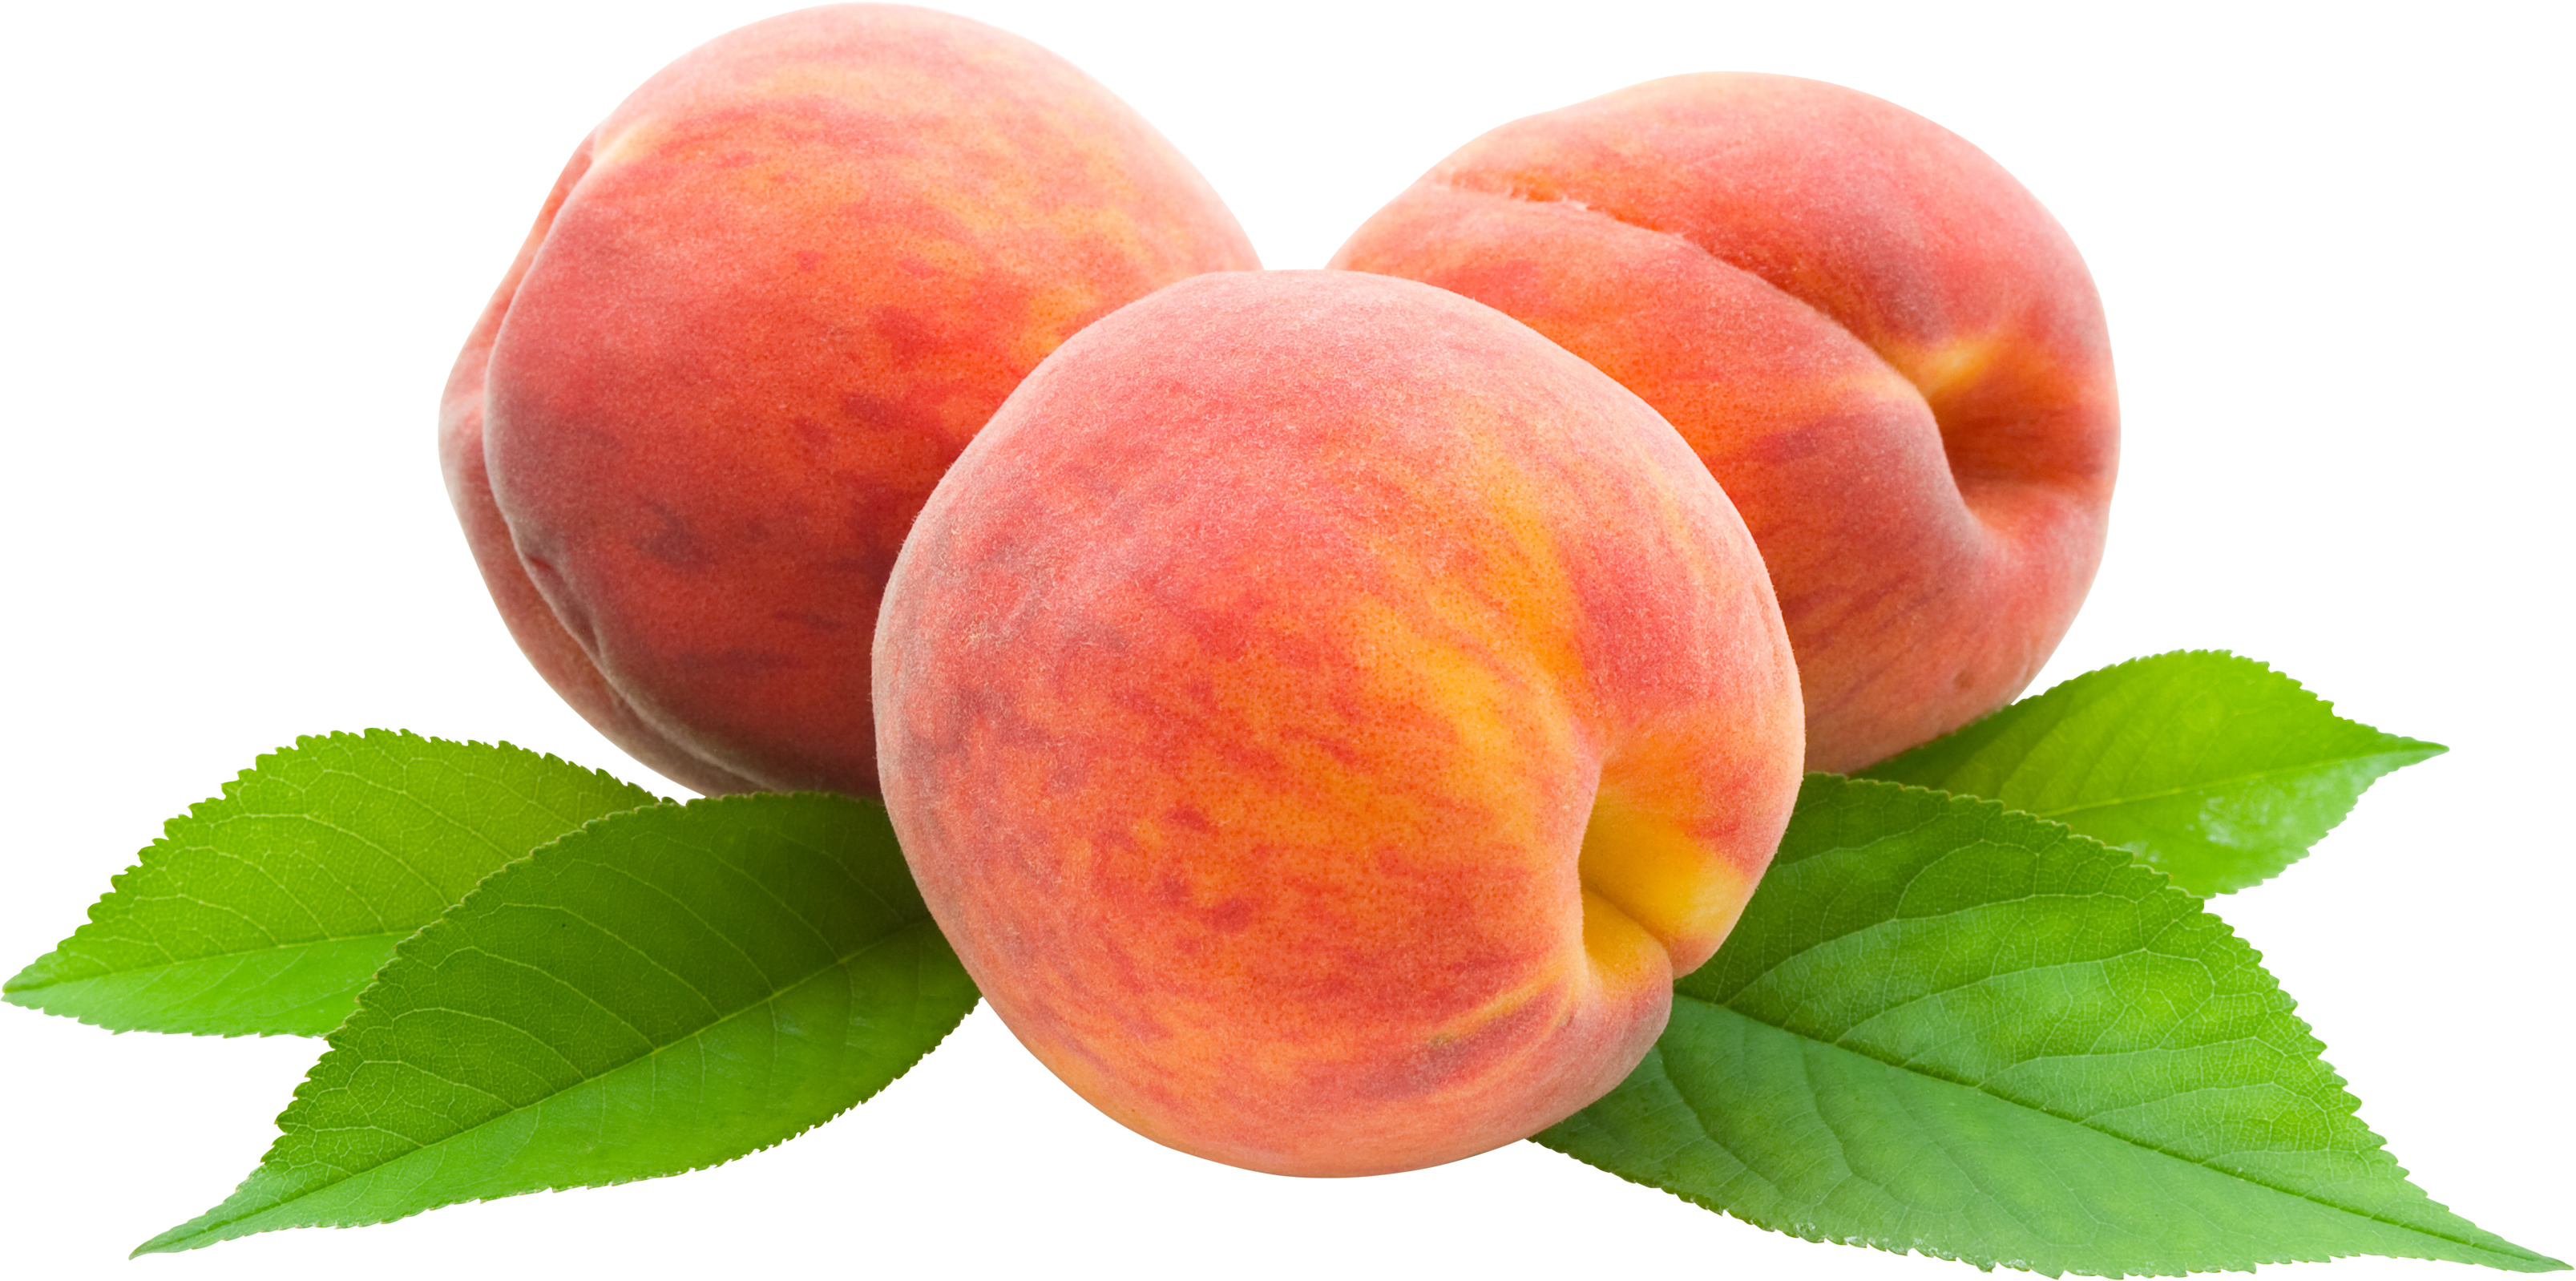 Peaches Free Tranparent Png image #41689